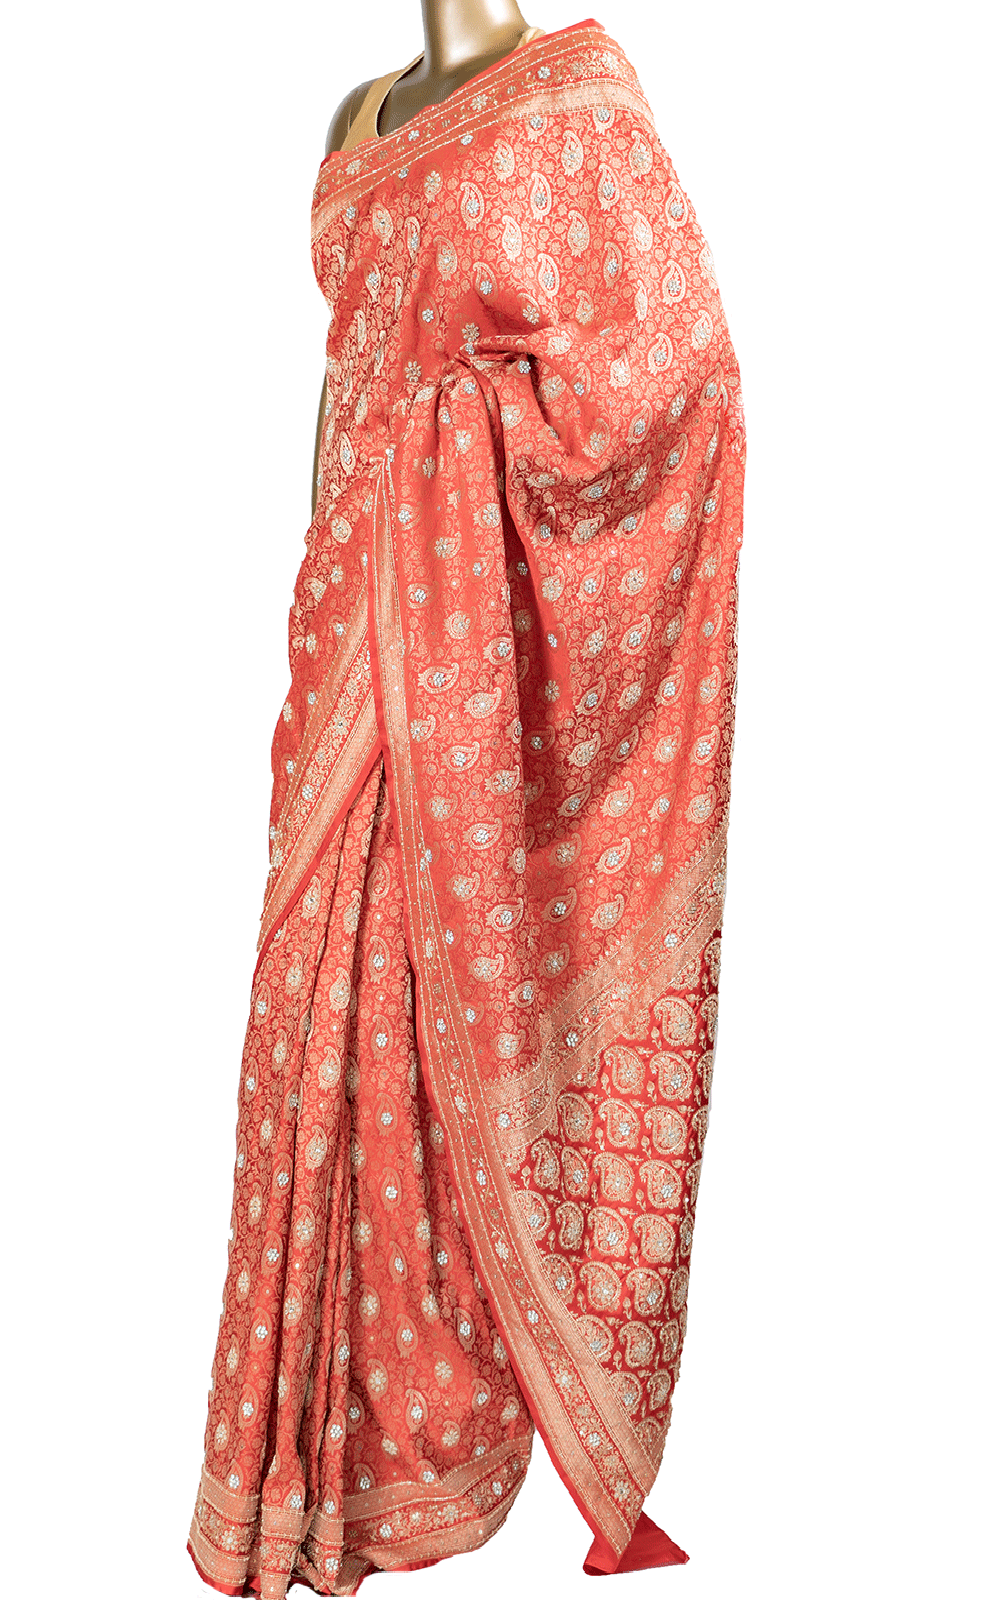 Red Banarsi Silk Saree with Stone Embroidery